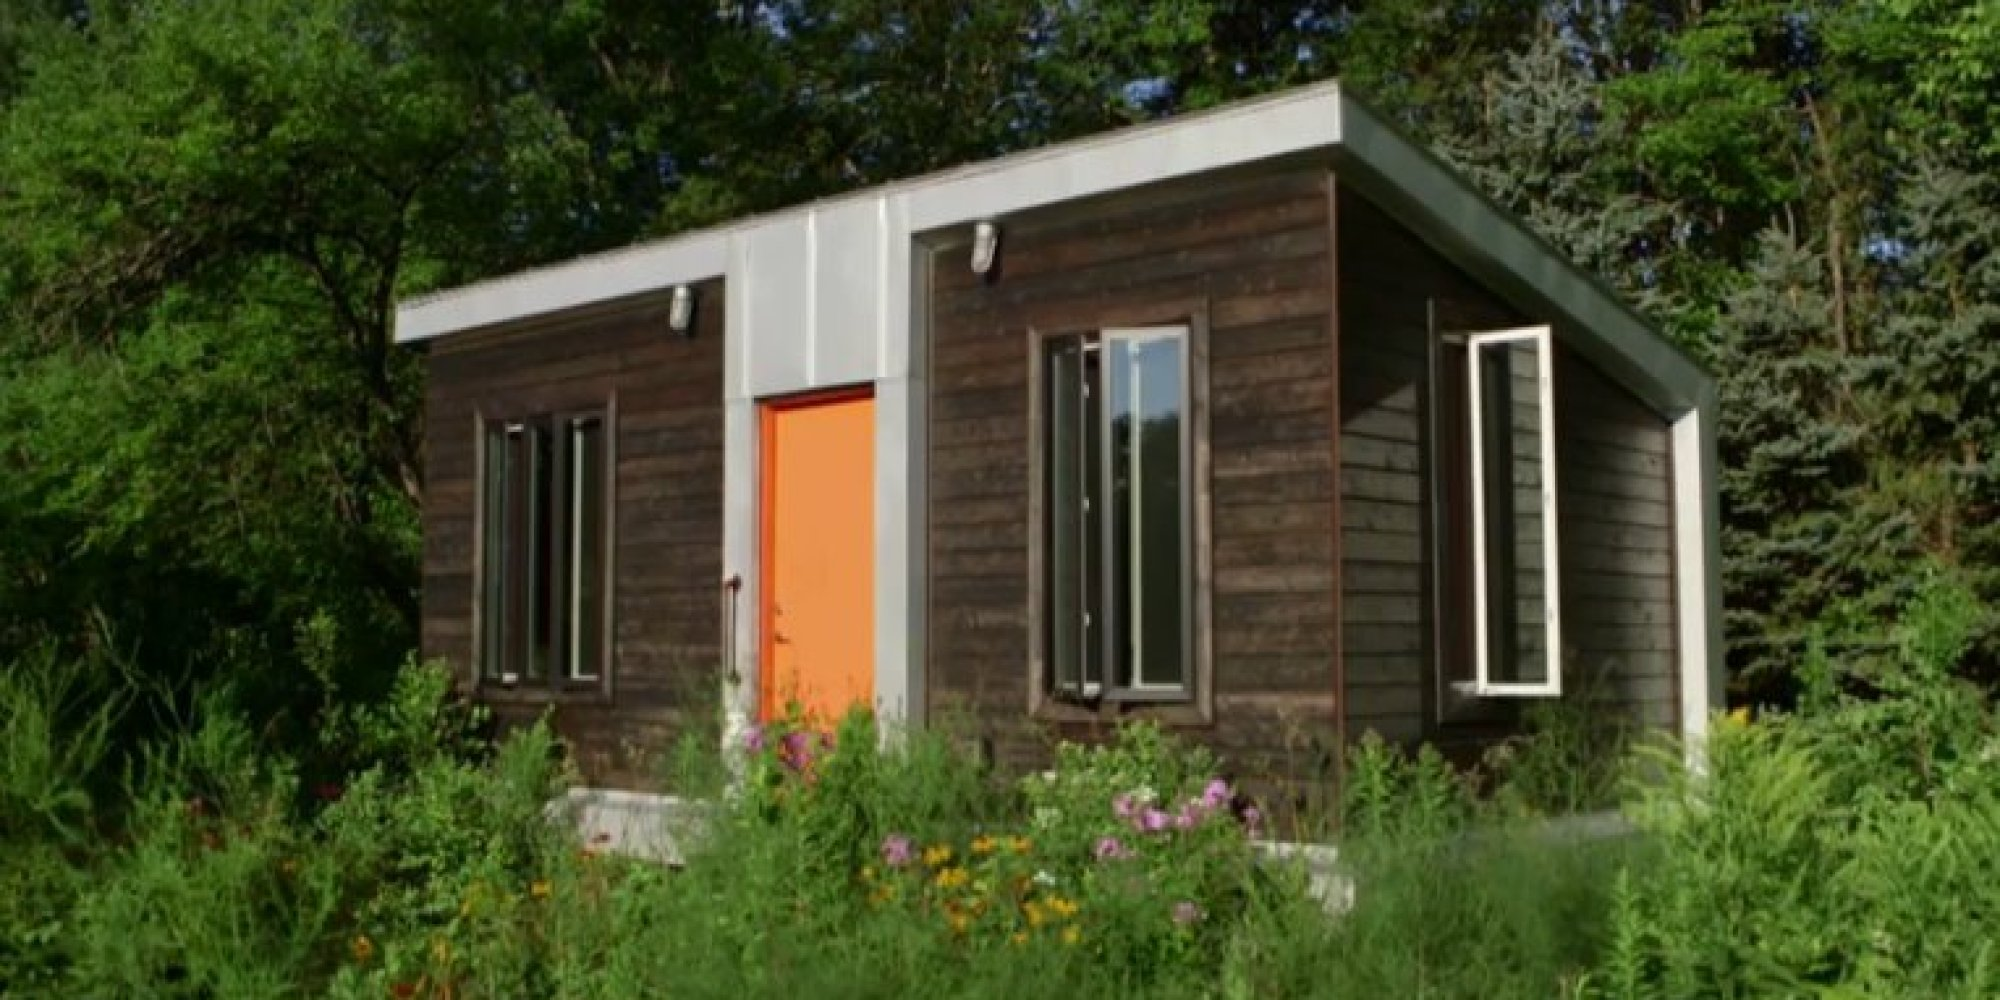 Tiny House Floor Plans Small Cabins Tiny Houses Small: The 'Yestermorrow' House Will Change Your Mind About Tiny